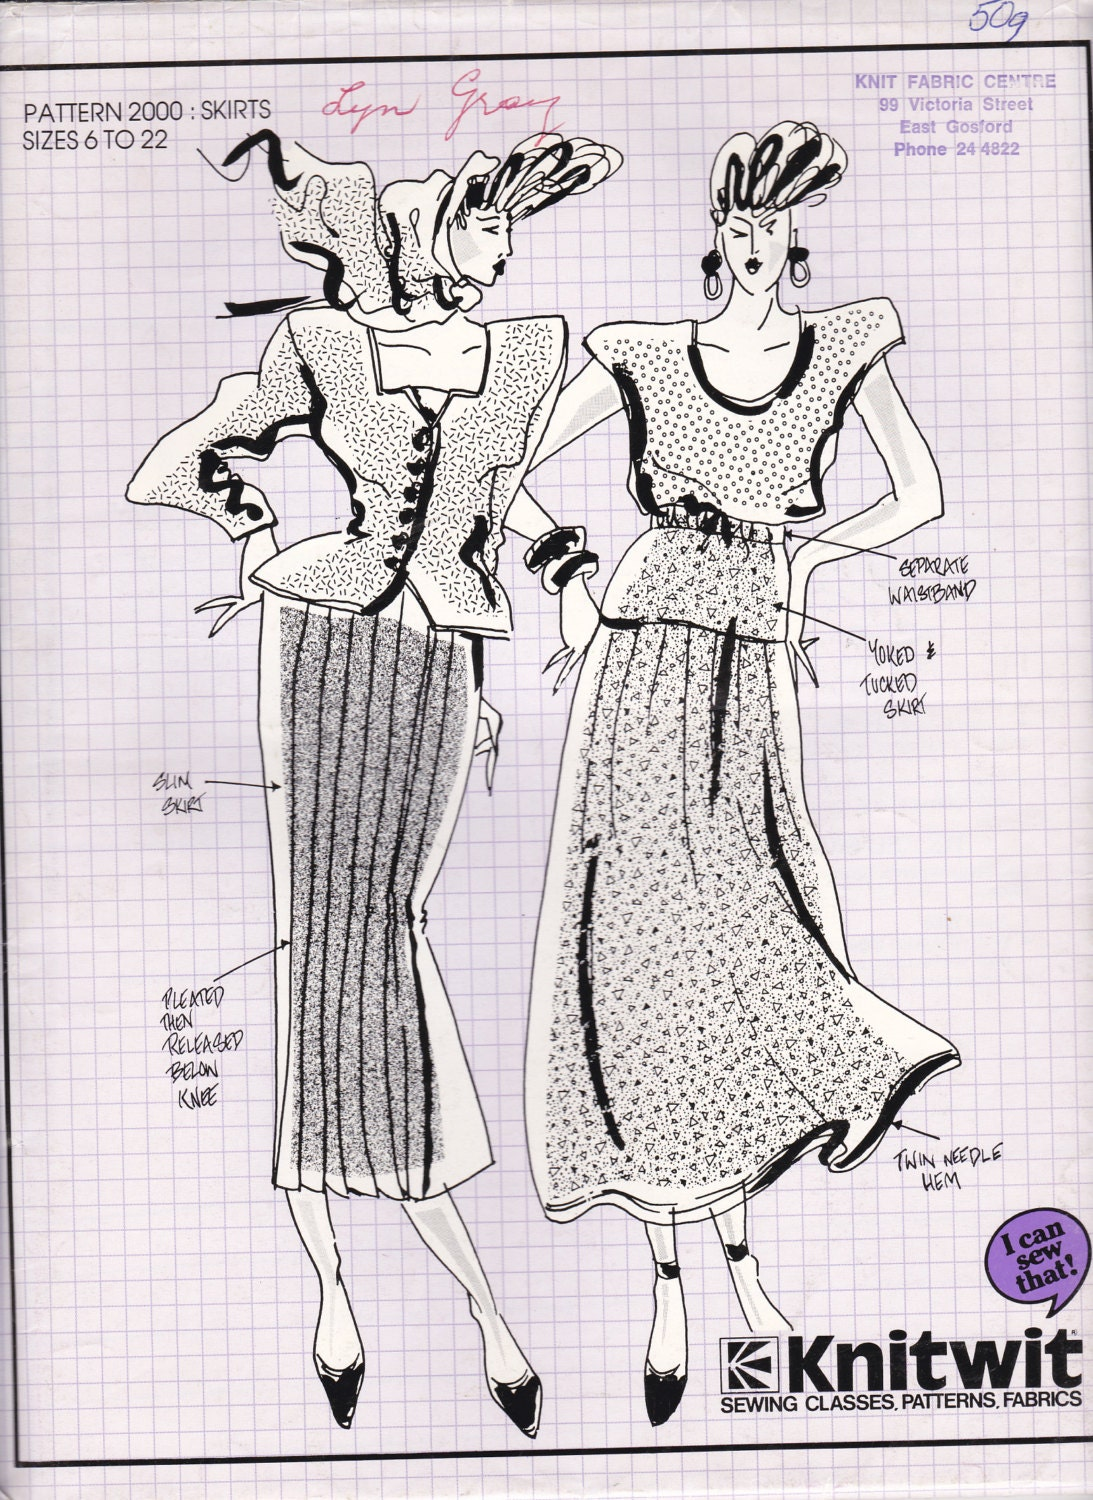 Outstanding Knitwit Sewing Patterns Component - Blanket Knitting ...